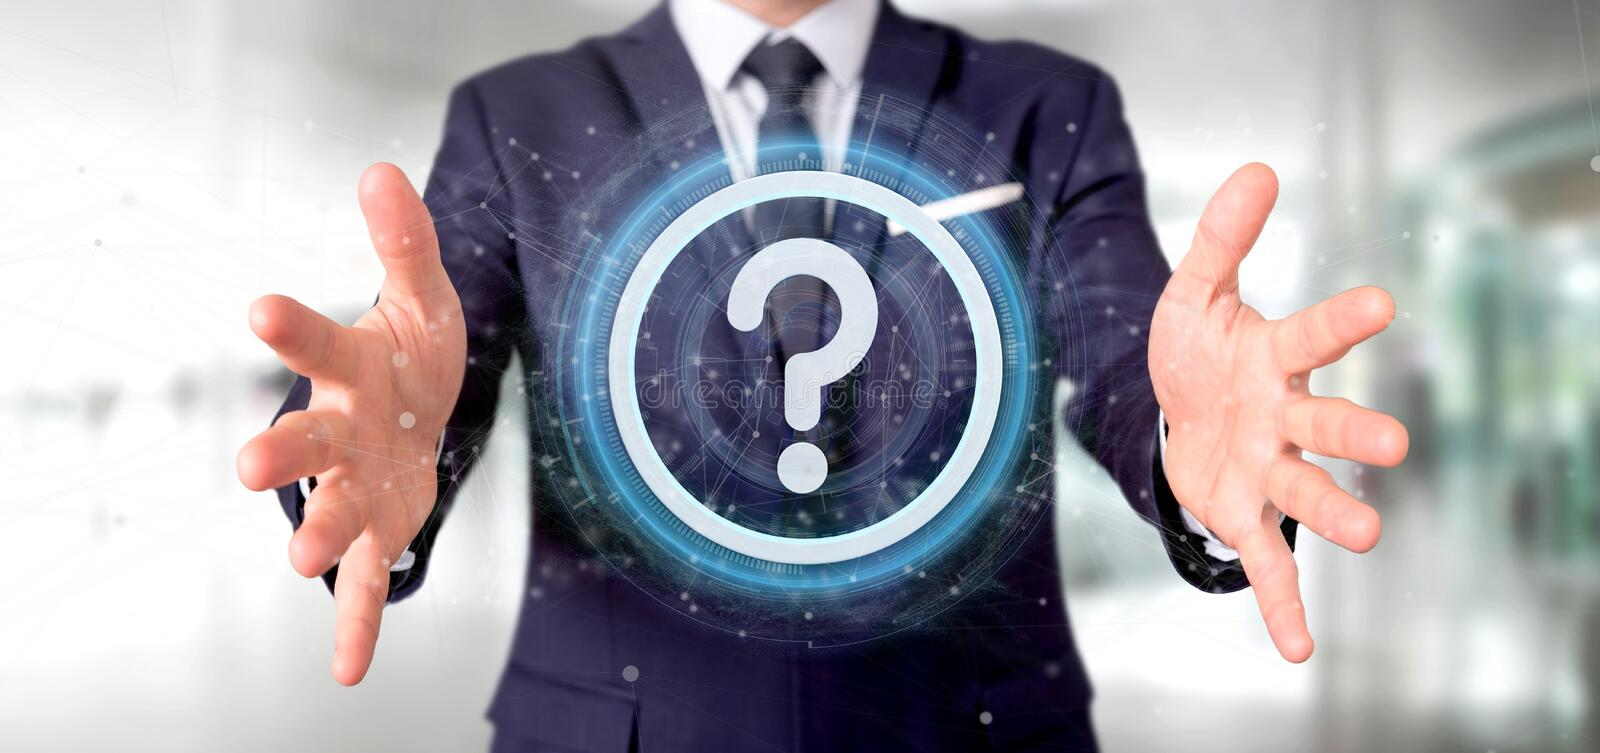 Man holding a Technology question mark icon on a circle 3d rendering. View of a Man holding a Technology question mark icon on a circle 3d rendering royalty free stock photography